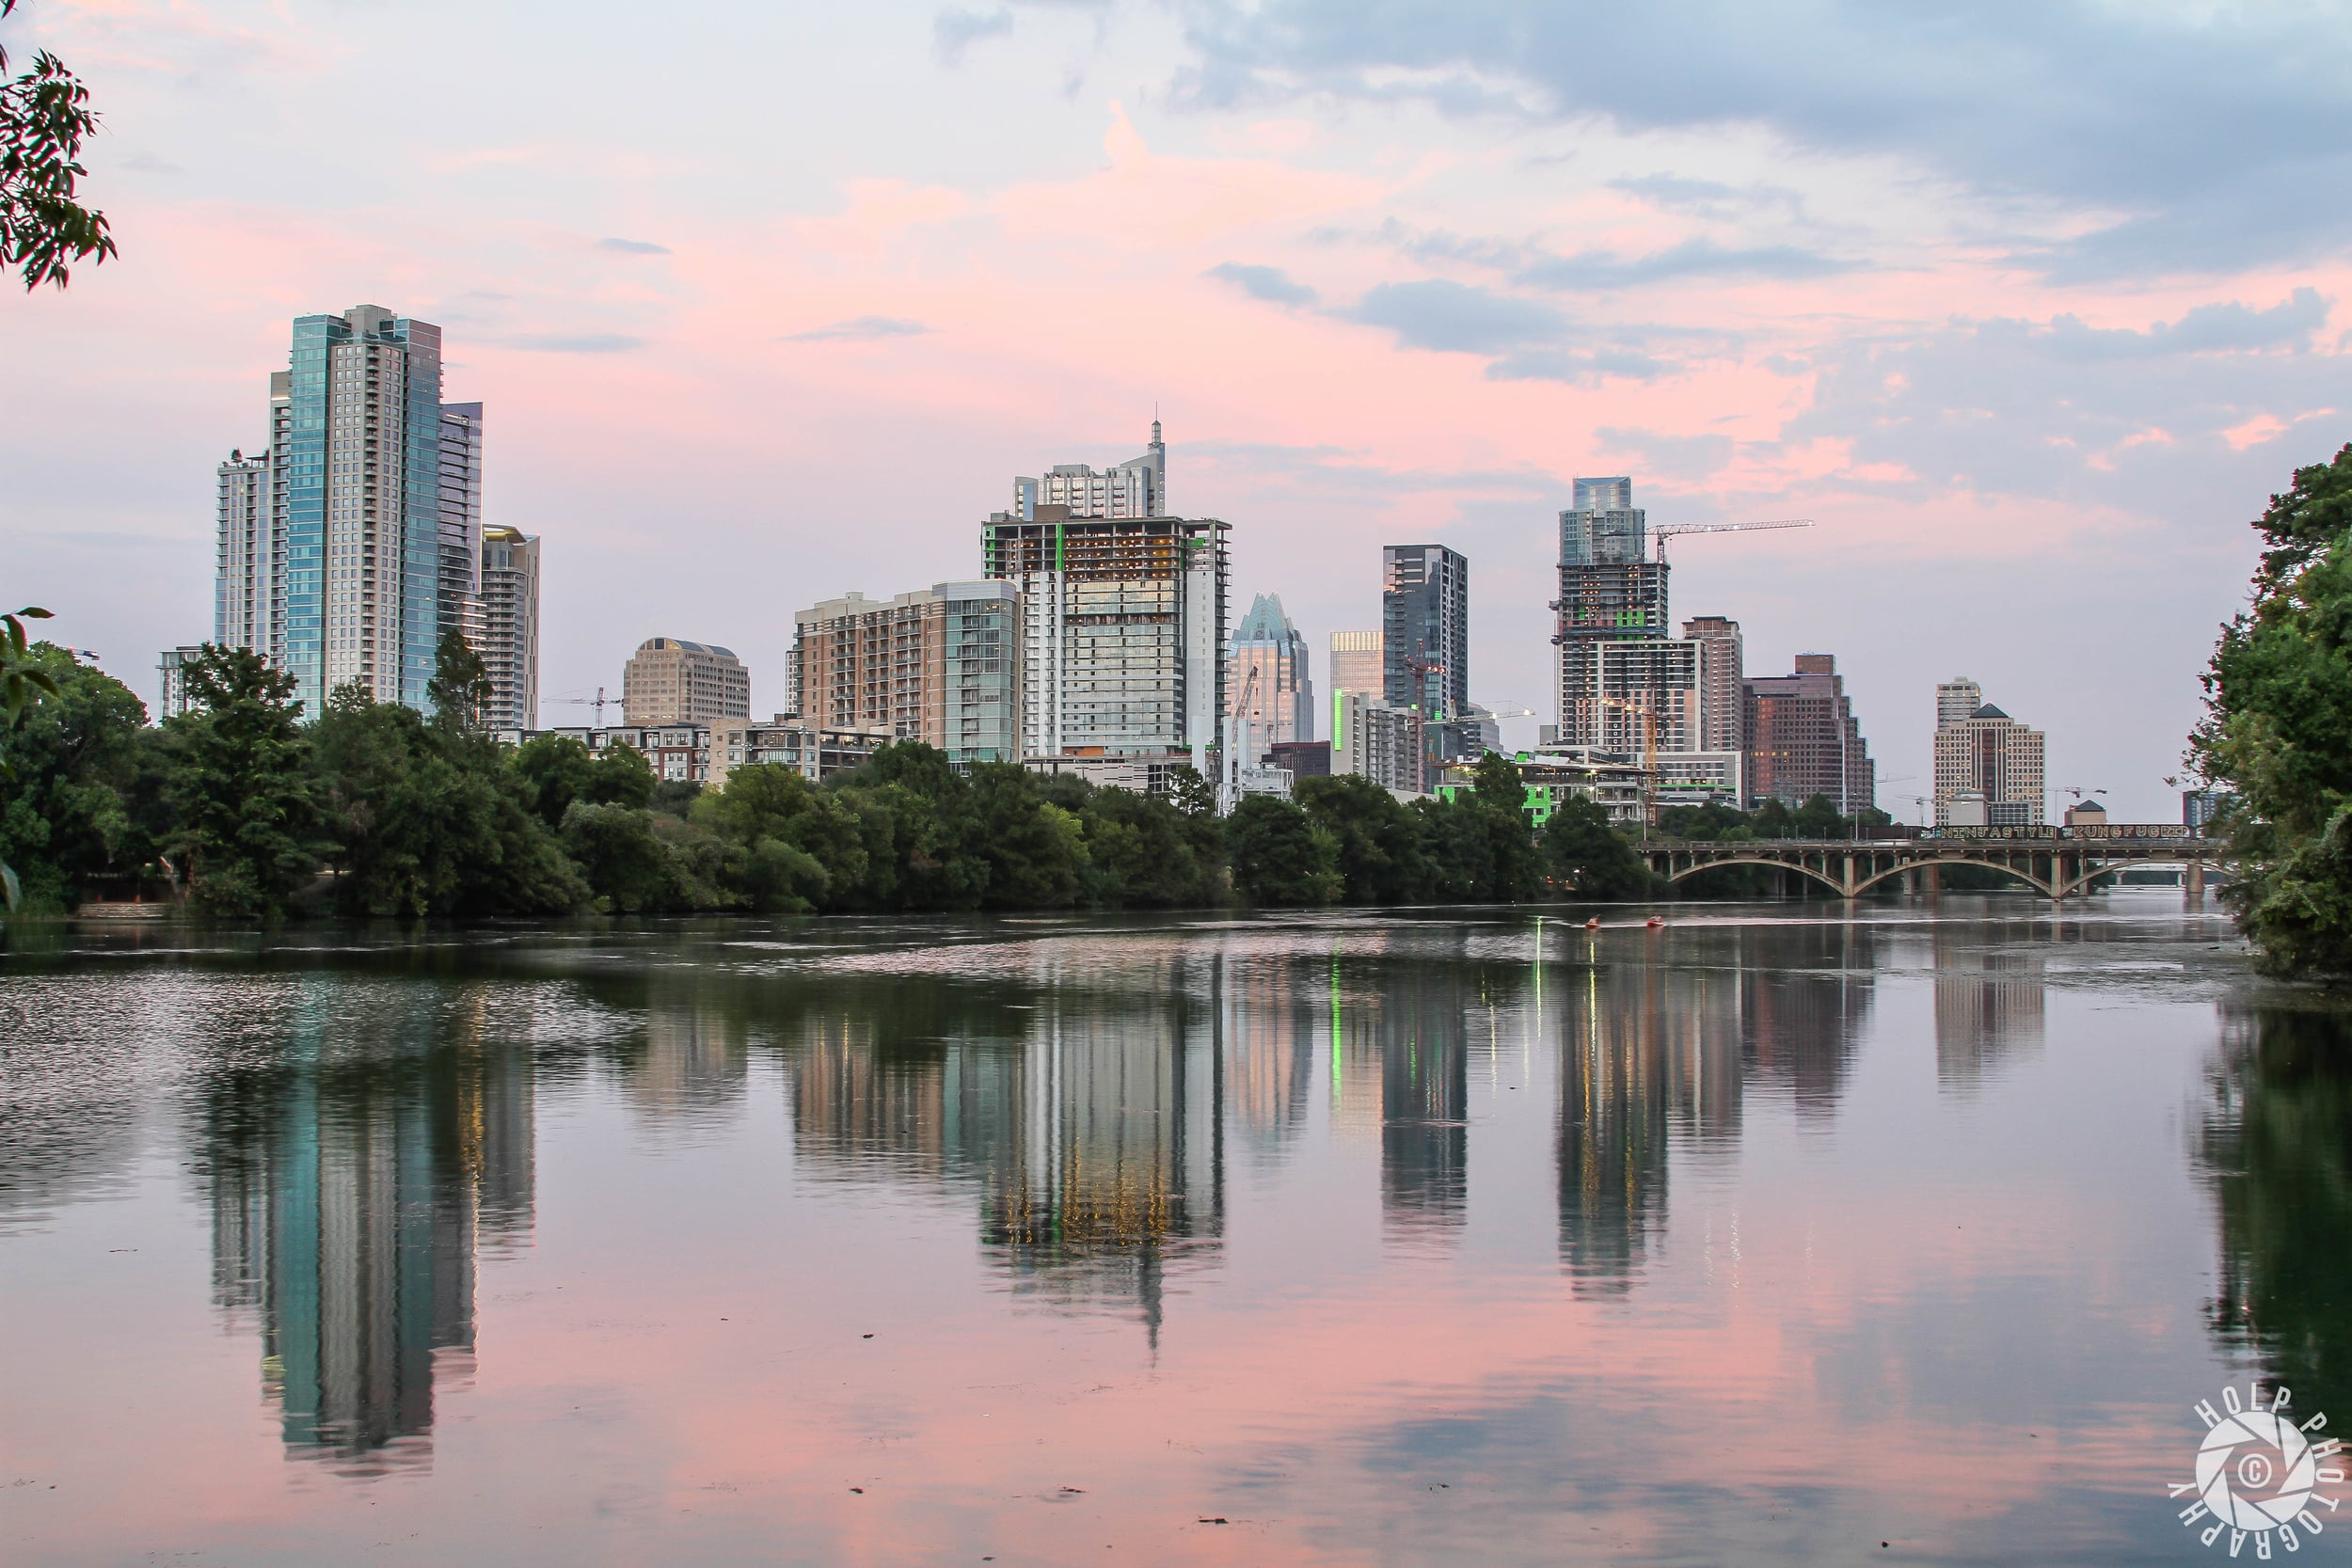 Arguably the most scenic view of the city over Lady Bird Lake.